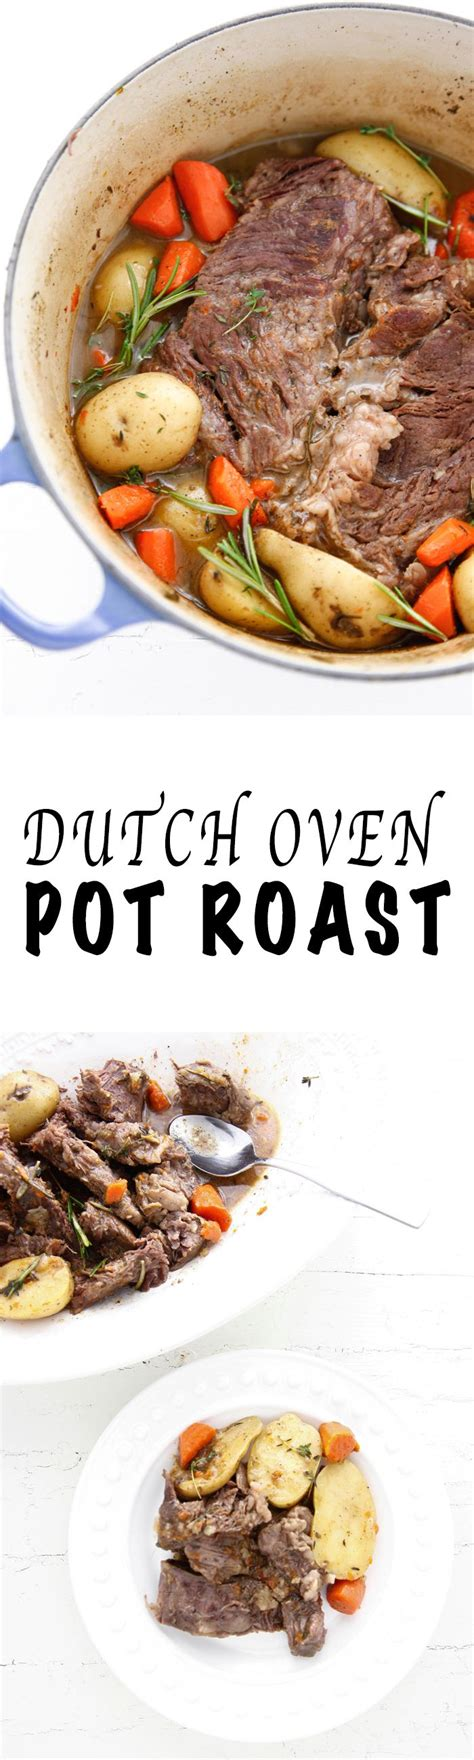 100 dutch oven recipes on pinterest dutch oven beef dutch oven cooking and easy dutch oven